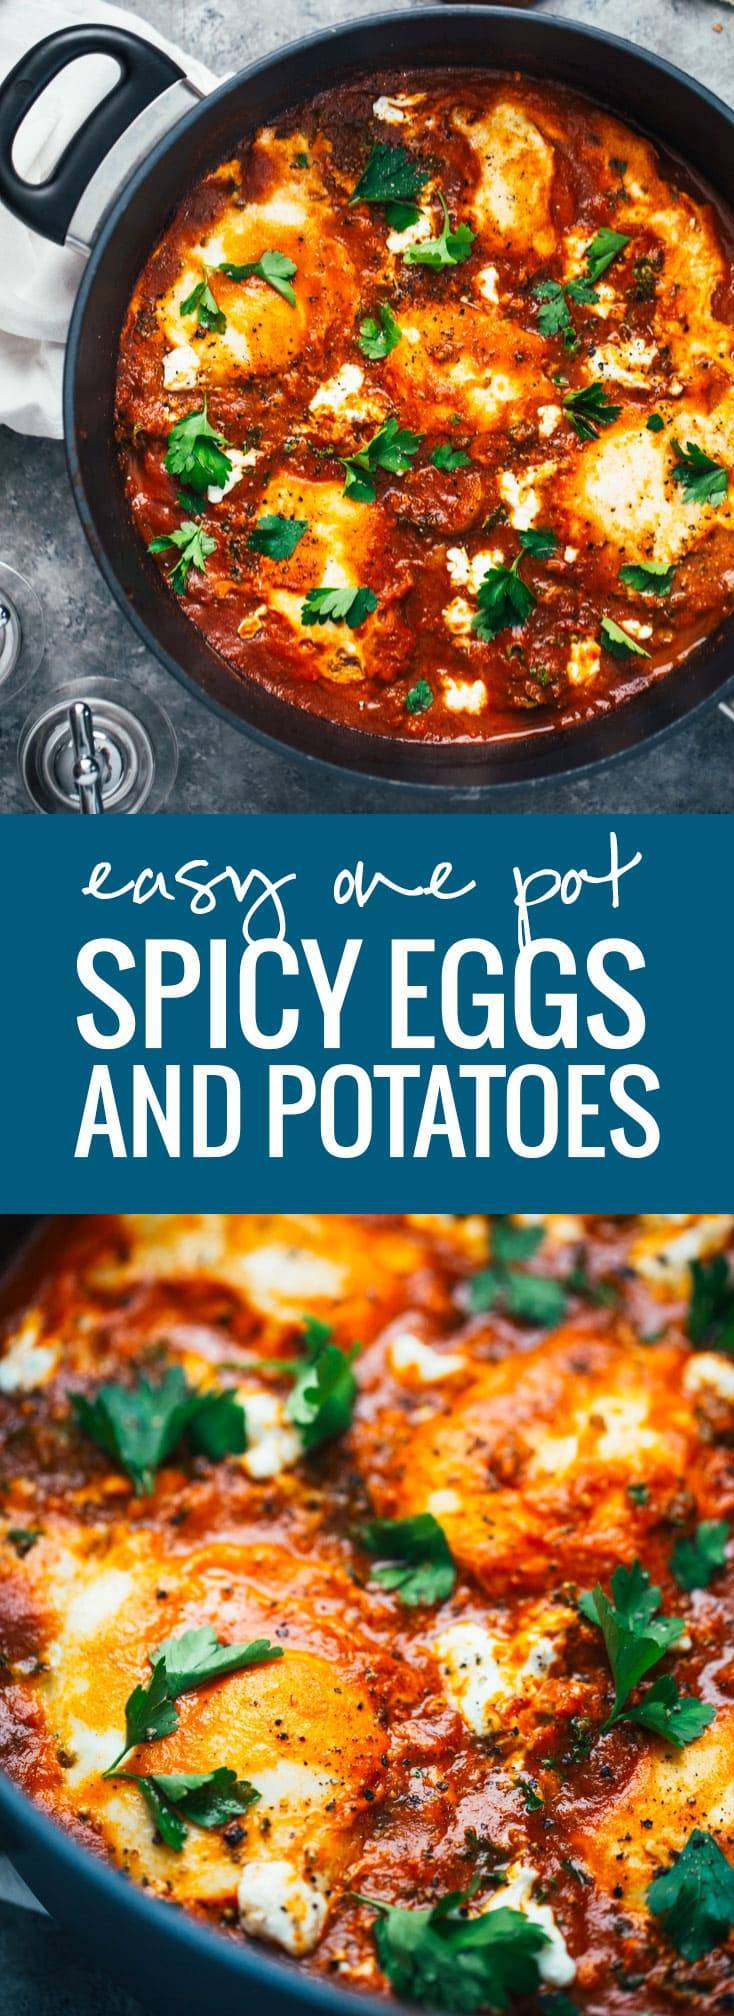 One-Pot Spicy Eggs and Potatoes Recipe - Pinch of Yum